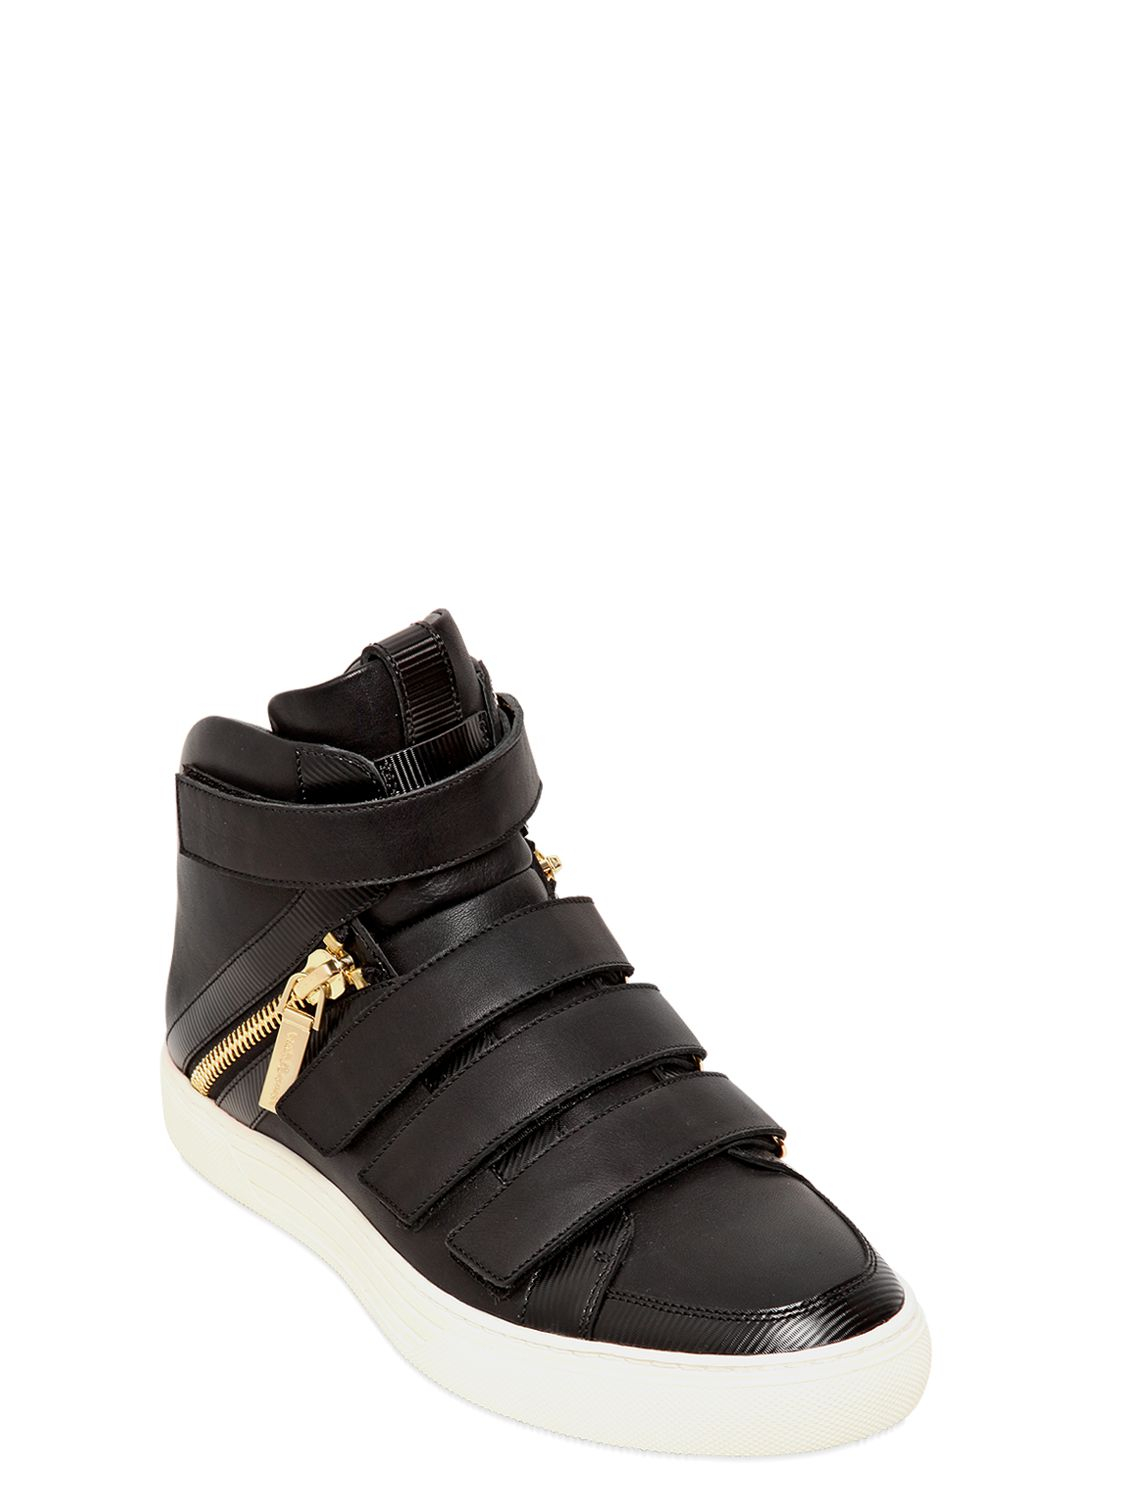 Lyst Balmain Velcro Nappa Leather High Top Sneakers In